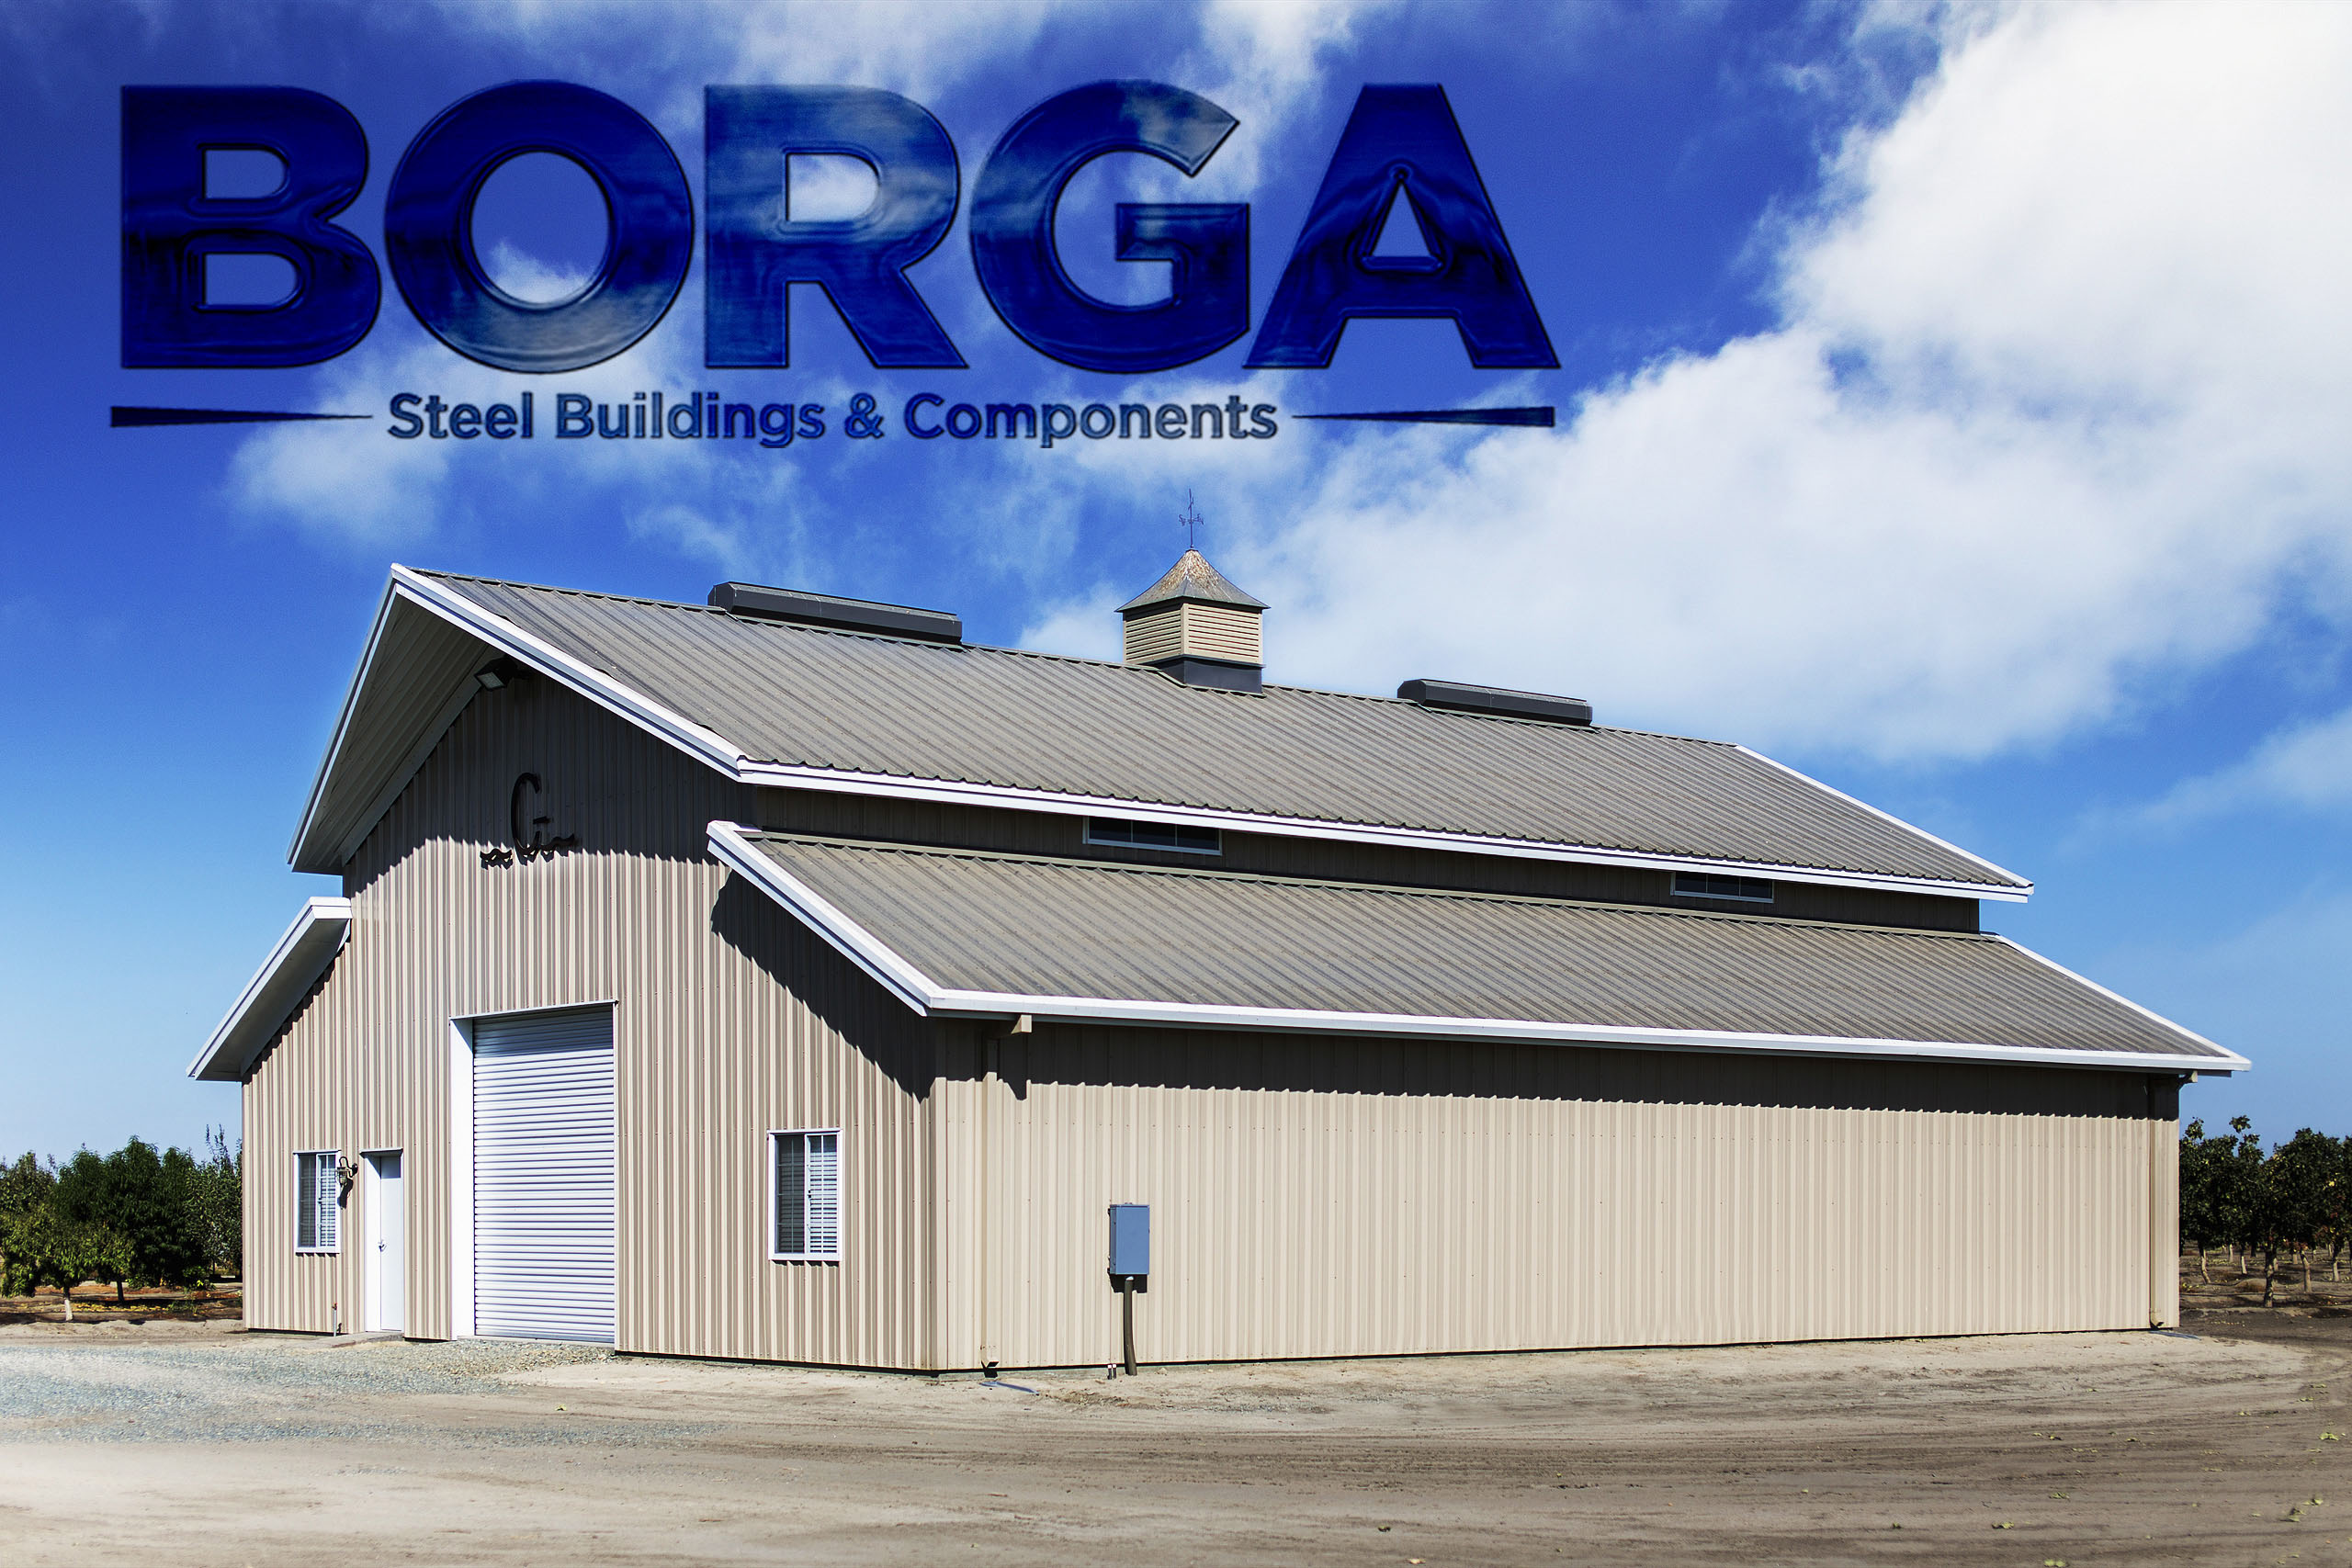 Borga Steel Buildings Components Fresno Fowler CA Metal Construction Fabrication Manufacturing Engineering